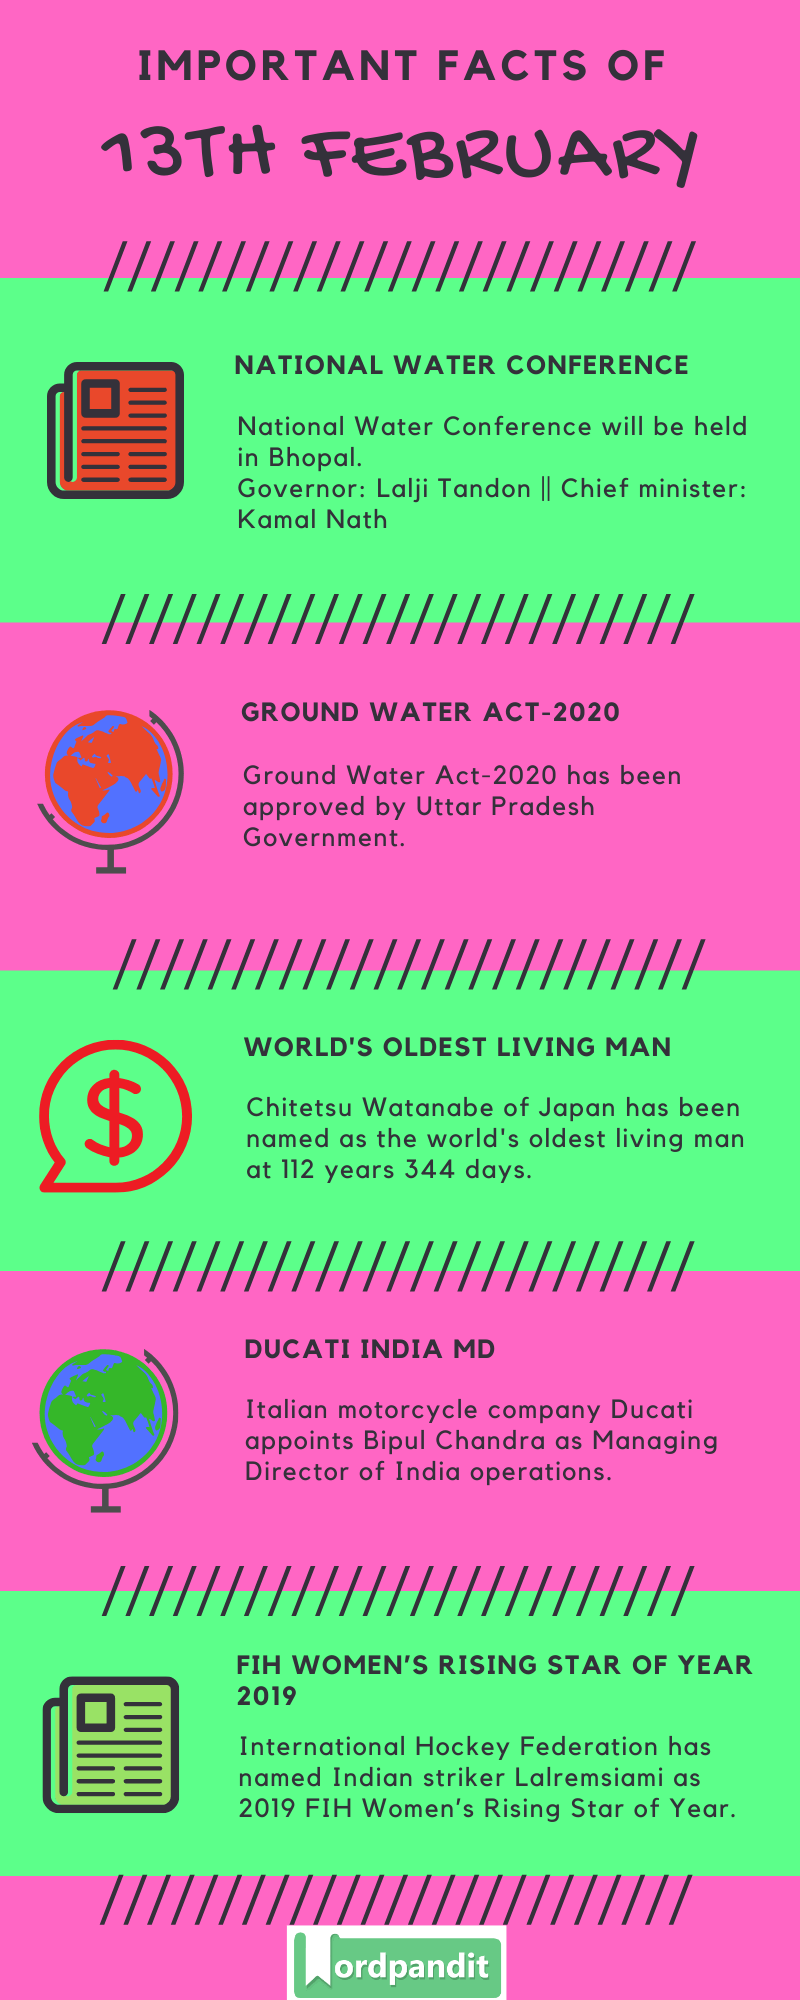 Daily Current Affairs 13 February 2020 Current Affairs Quiz 13 February 2020 Current Affairs Infographic